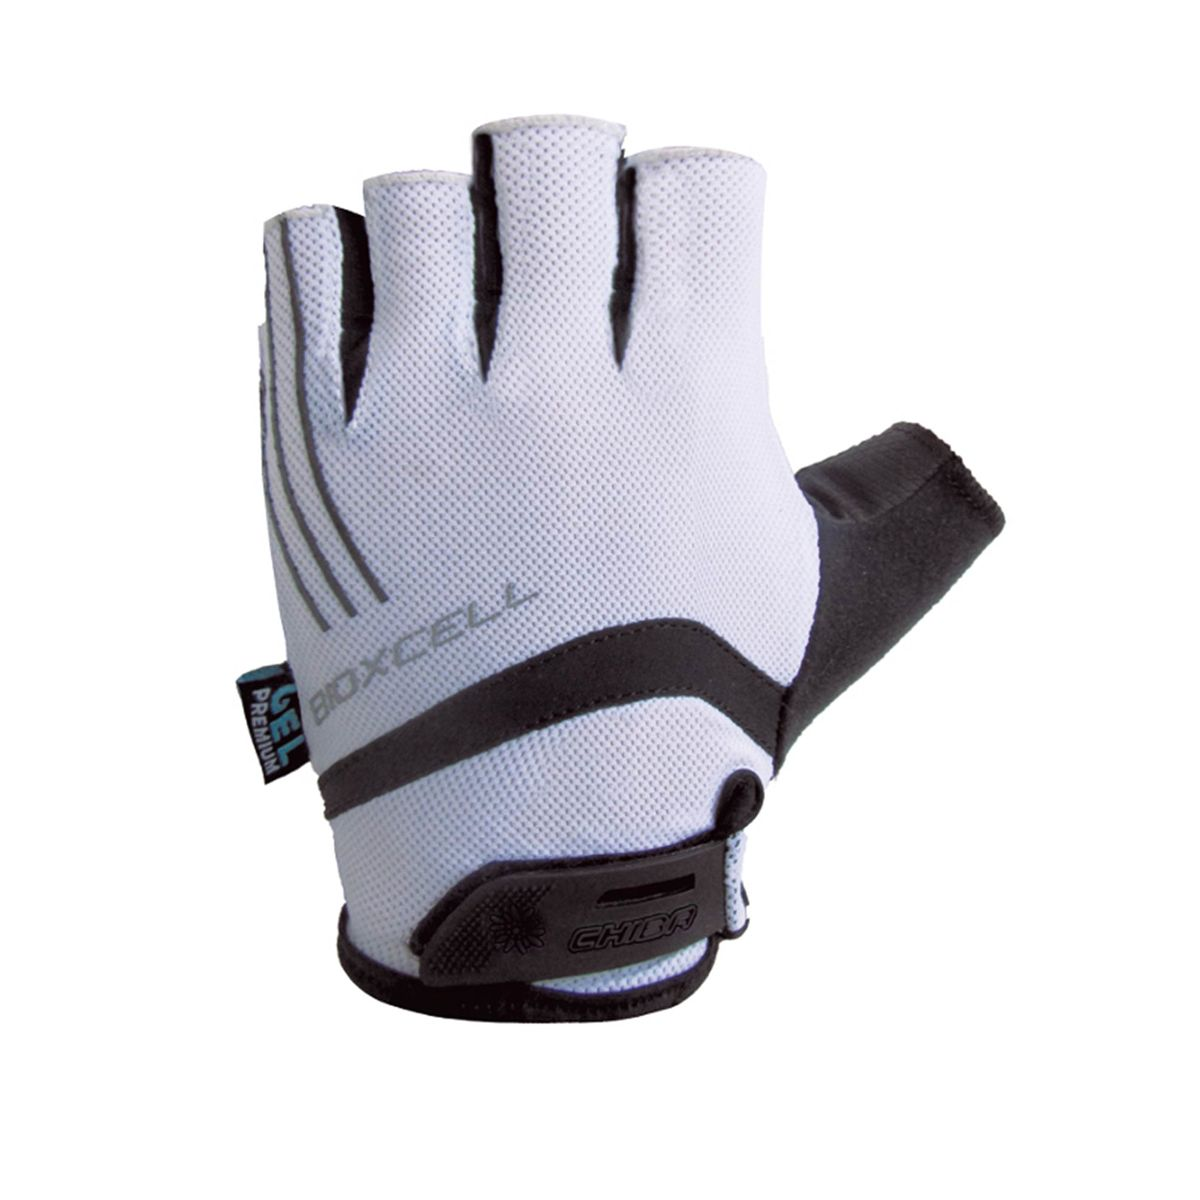 CHIBA LADY BIOXCELL PRO women's gloves | Gloves